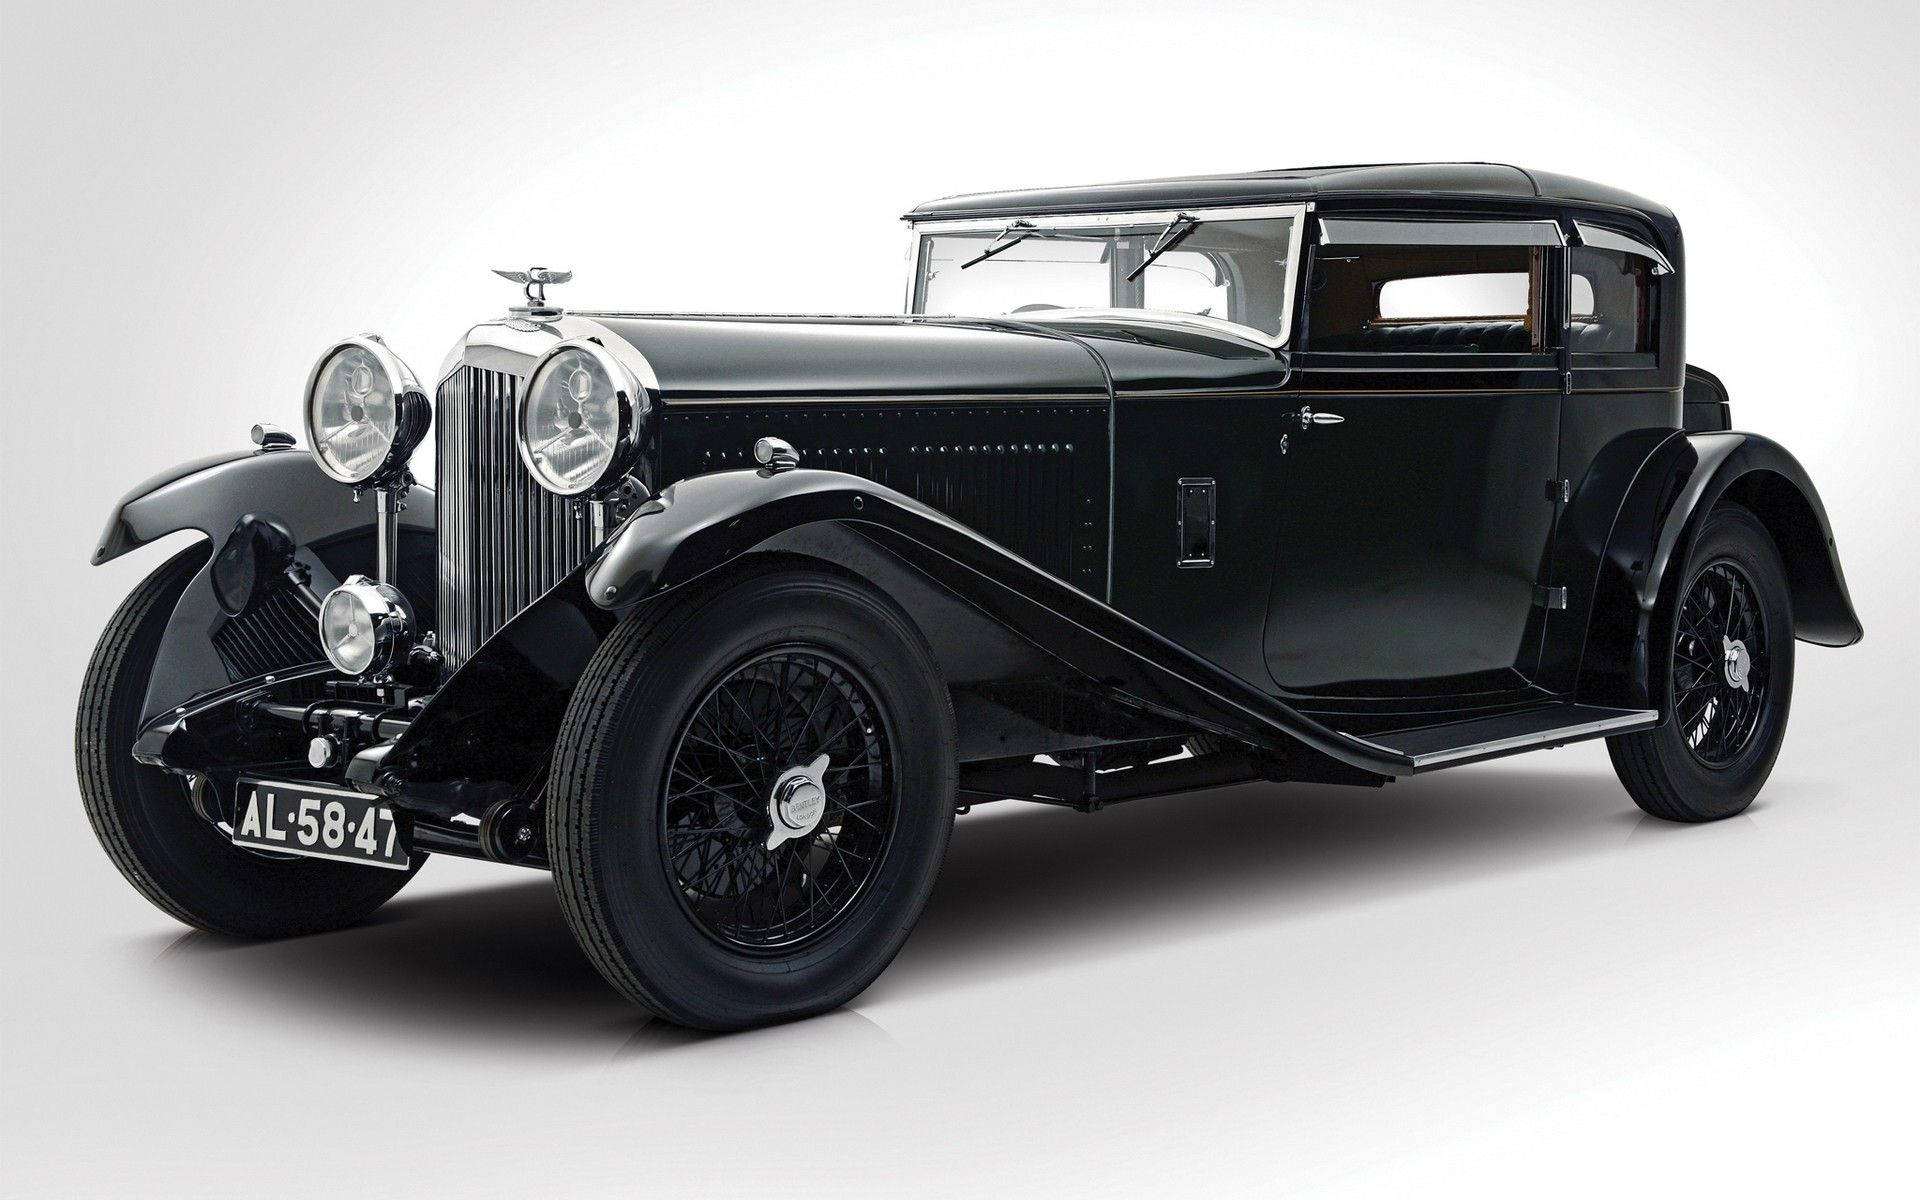 Classic Black Bentley 8 Litre Car Wallpaper Images Free HD #52636829 Wallpaper